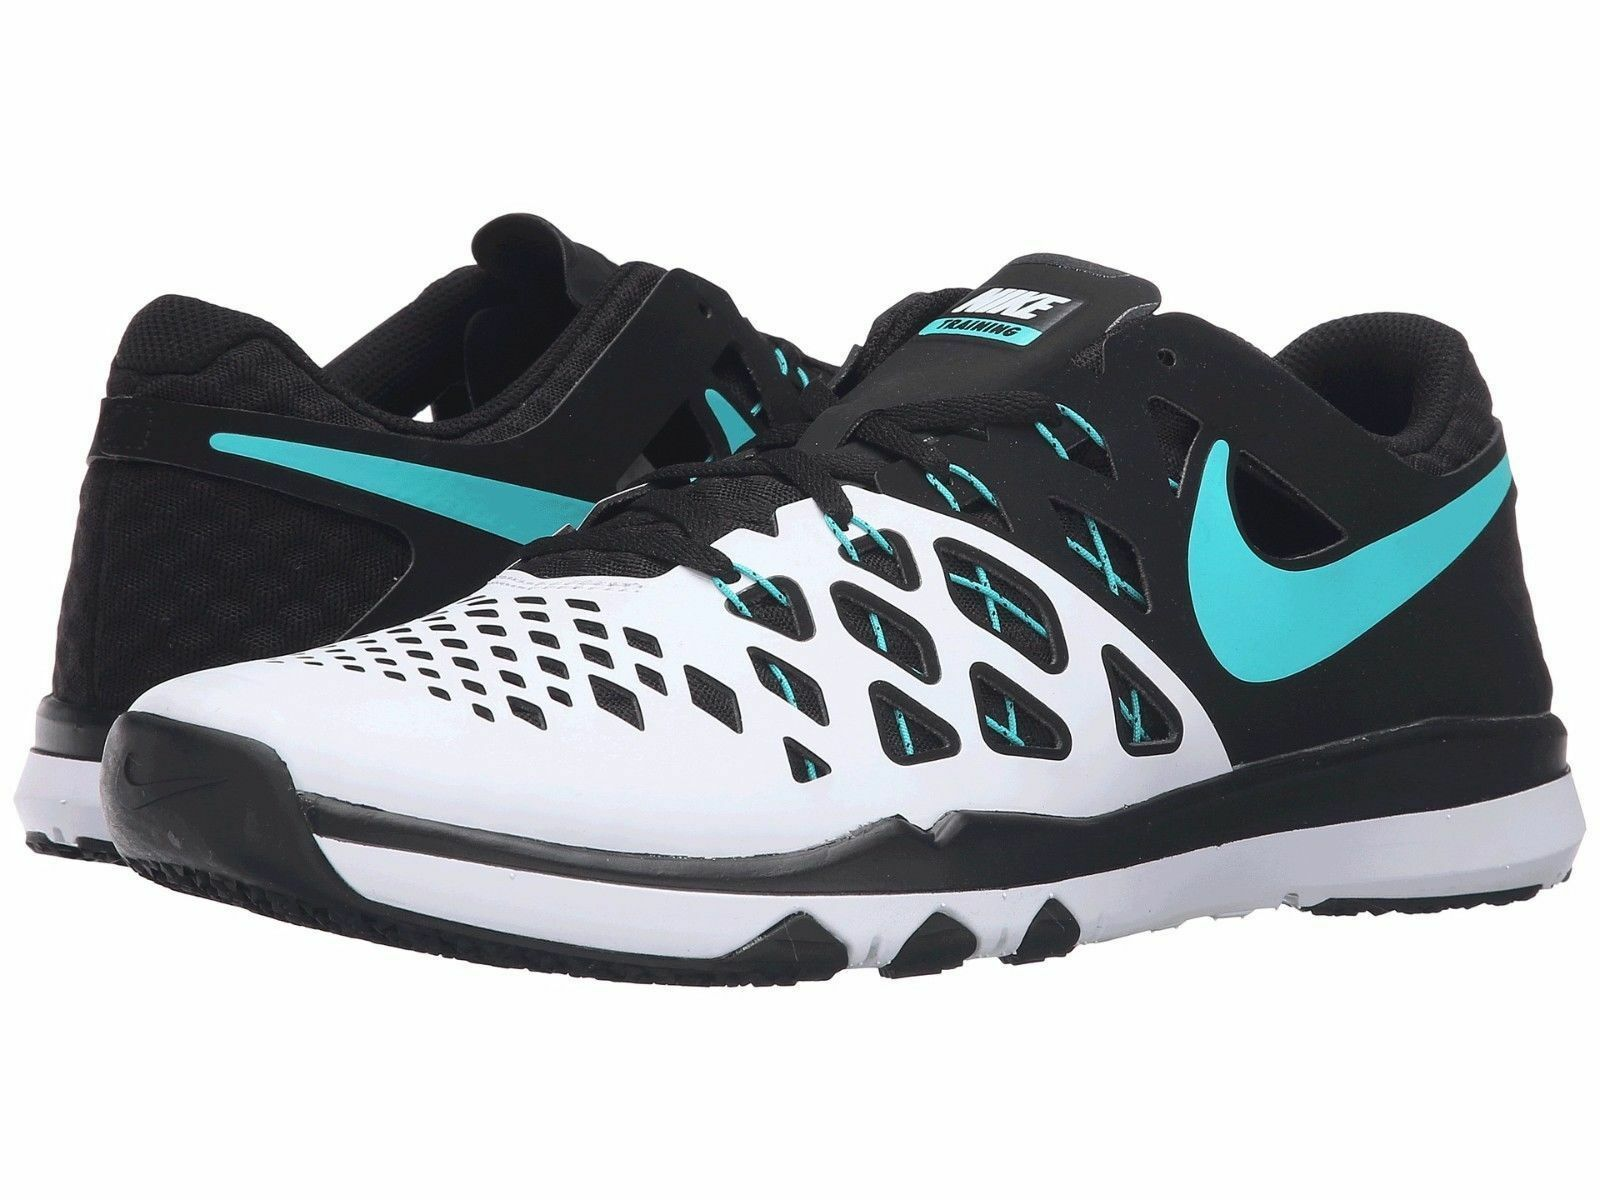 New Men's NIKE Men's New Train SPEED 843937-130 WHITE/HYPER-JADE/BLACK Sz 10 567d72